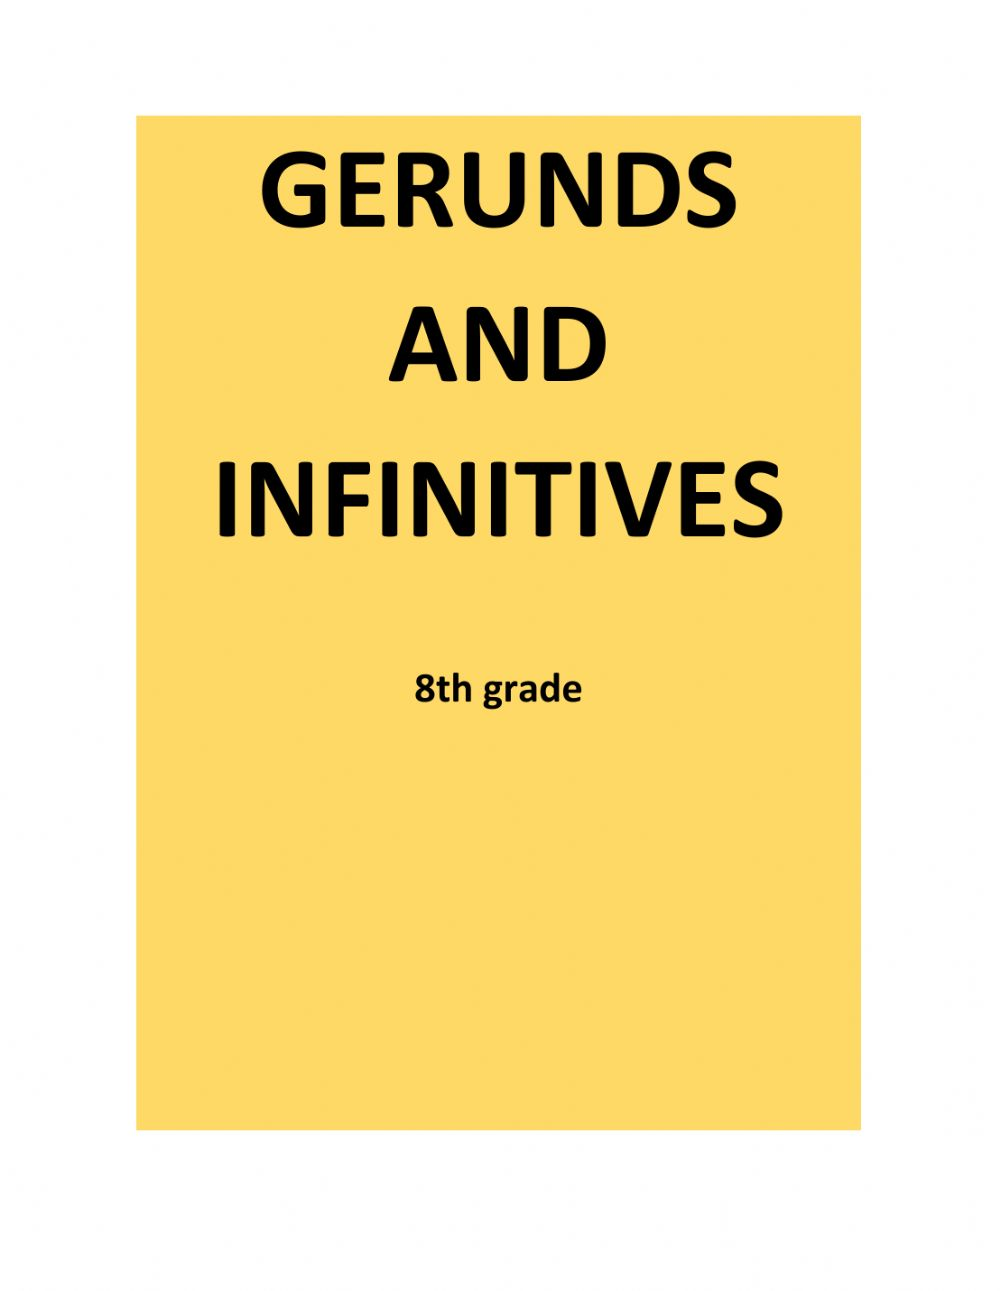 hight resolution of Gerunds and infinitives interactive worksheet for 8th grade